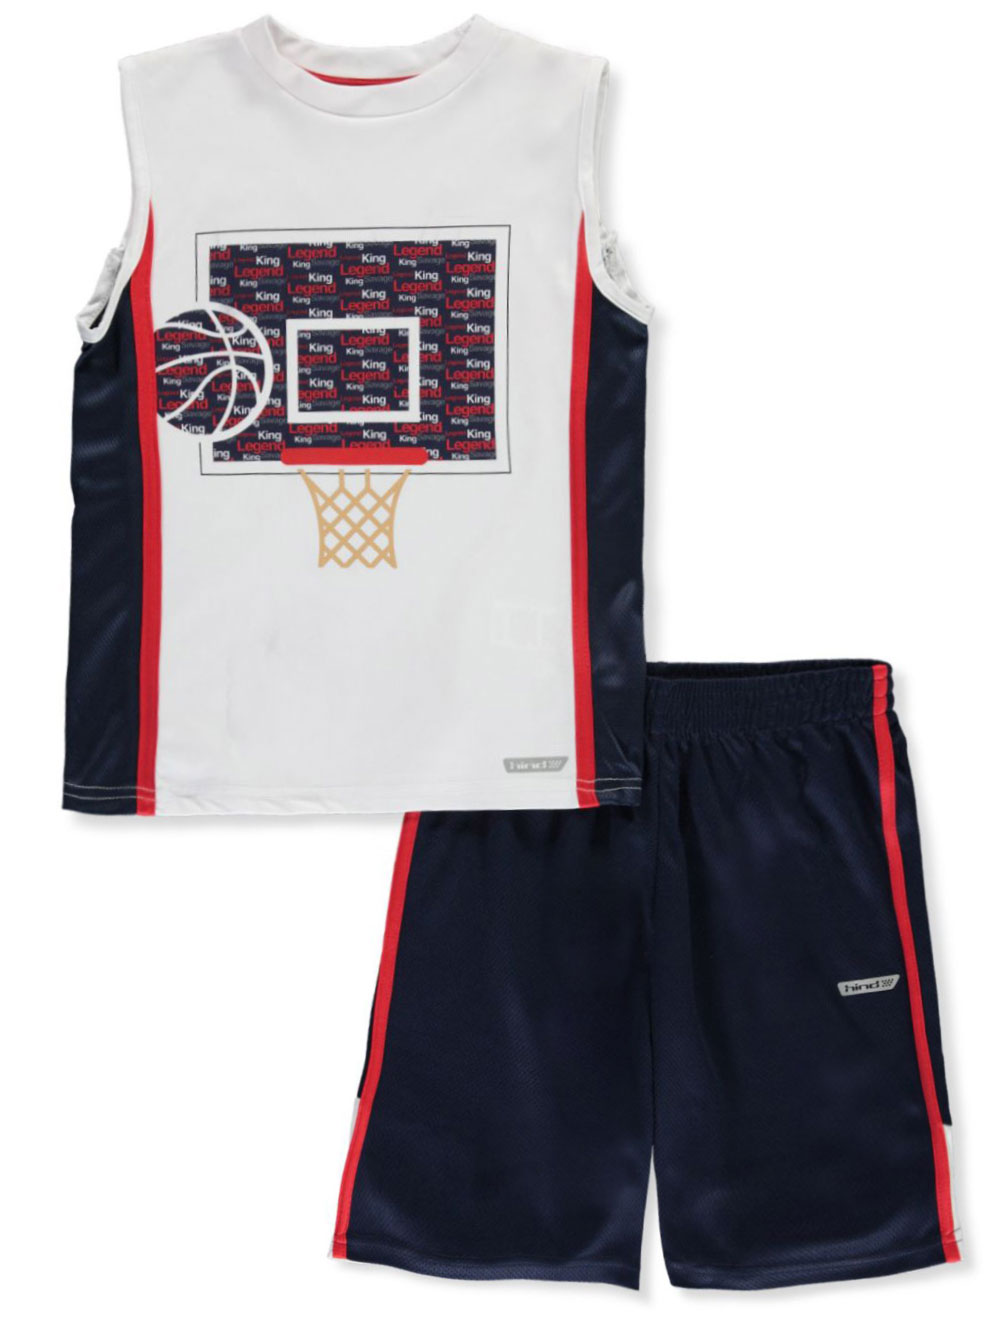 Boys Navy and Red Short Sets